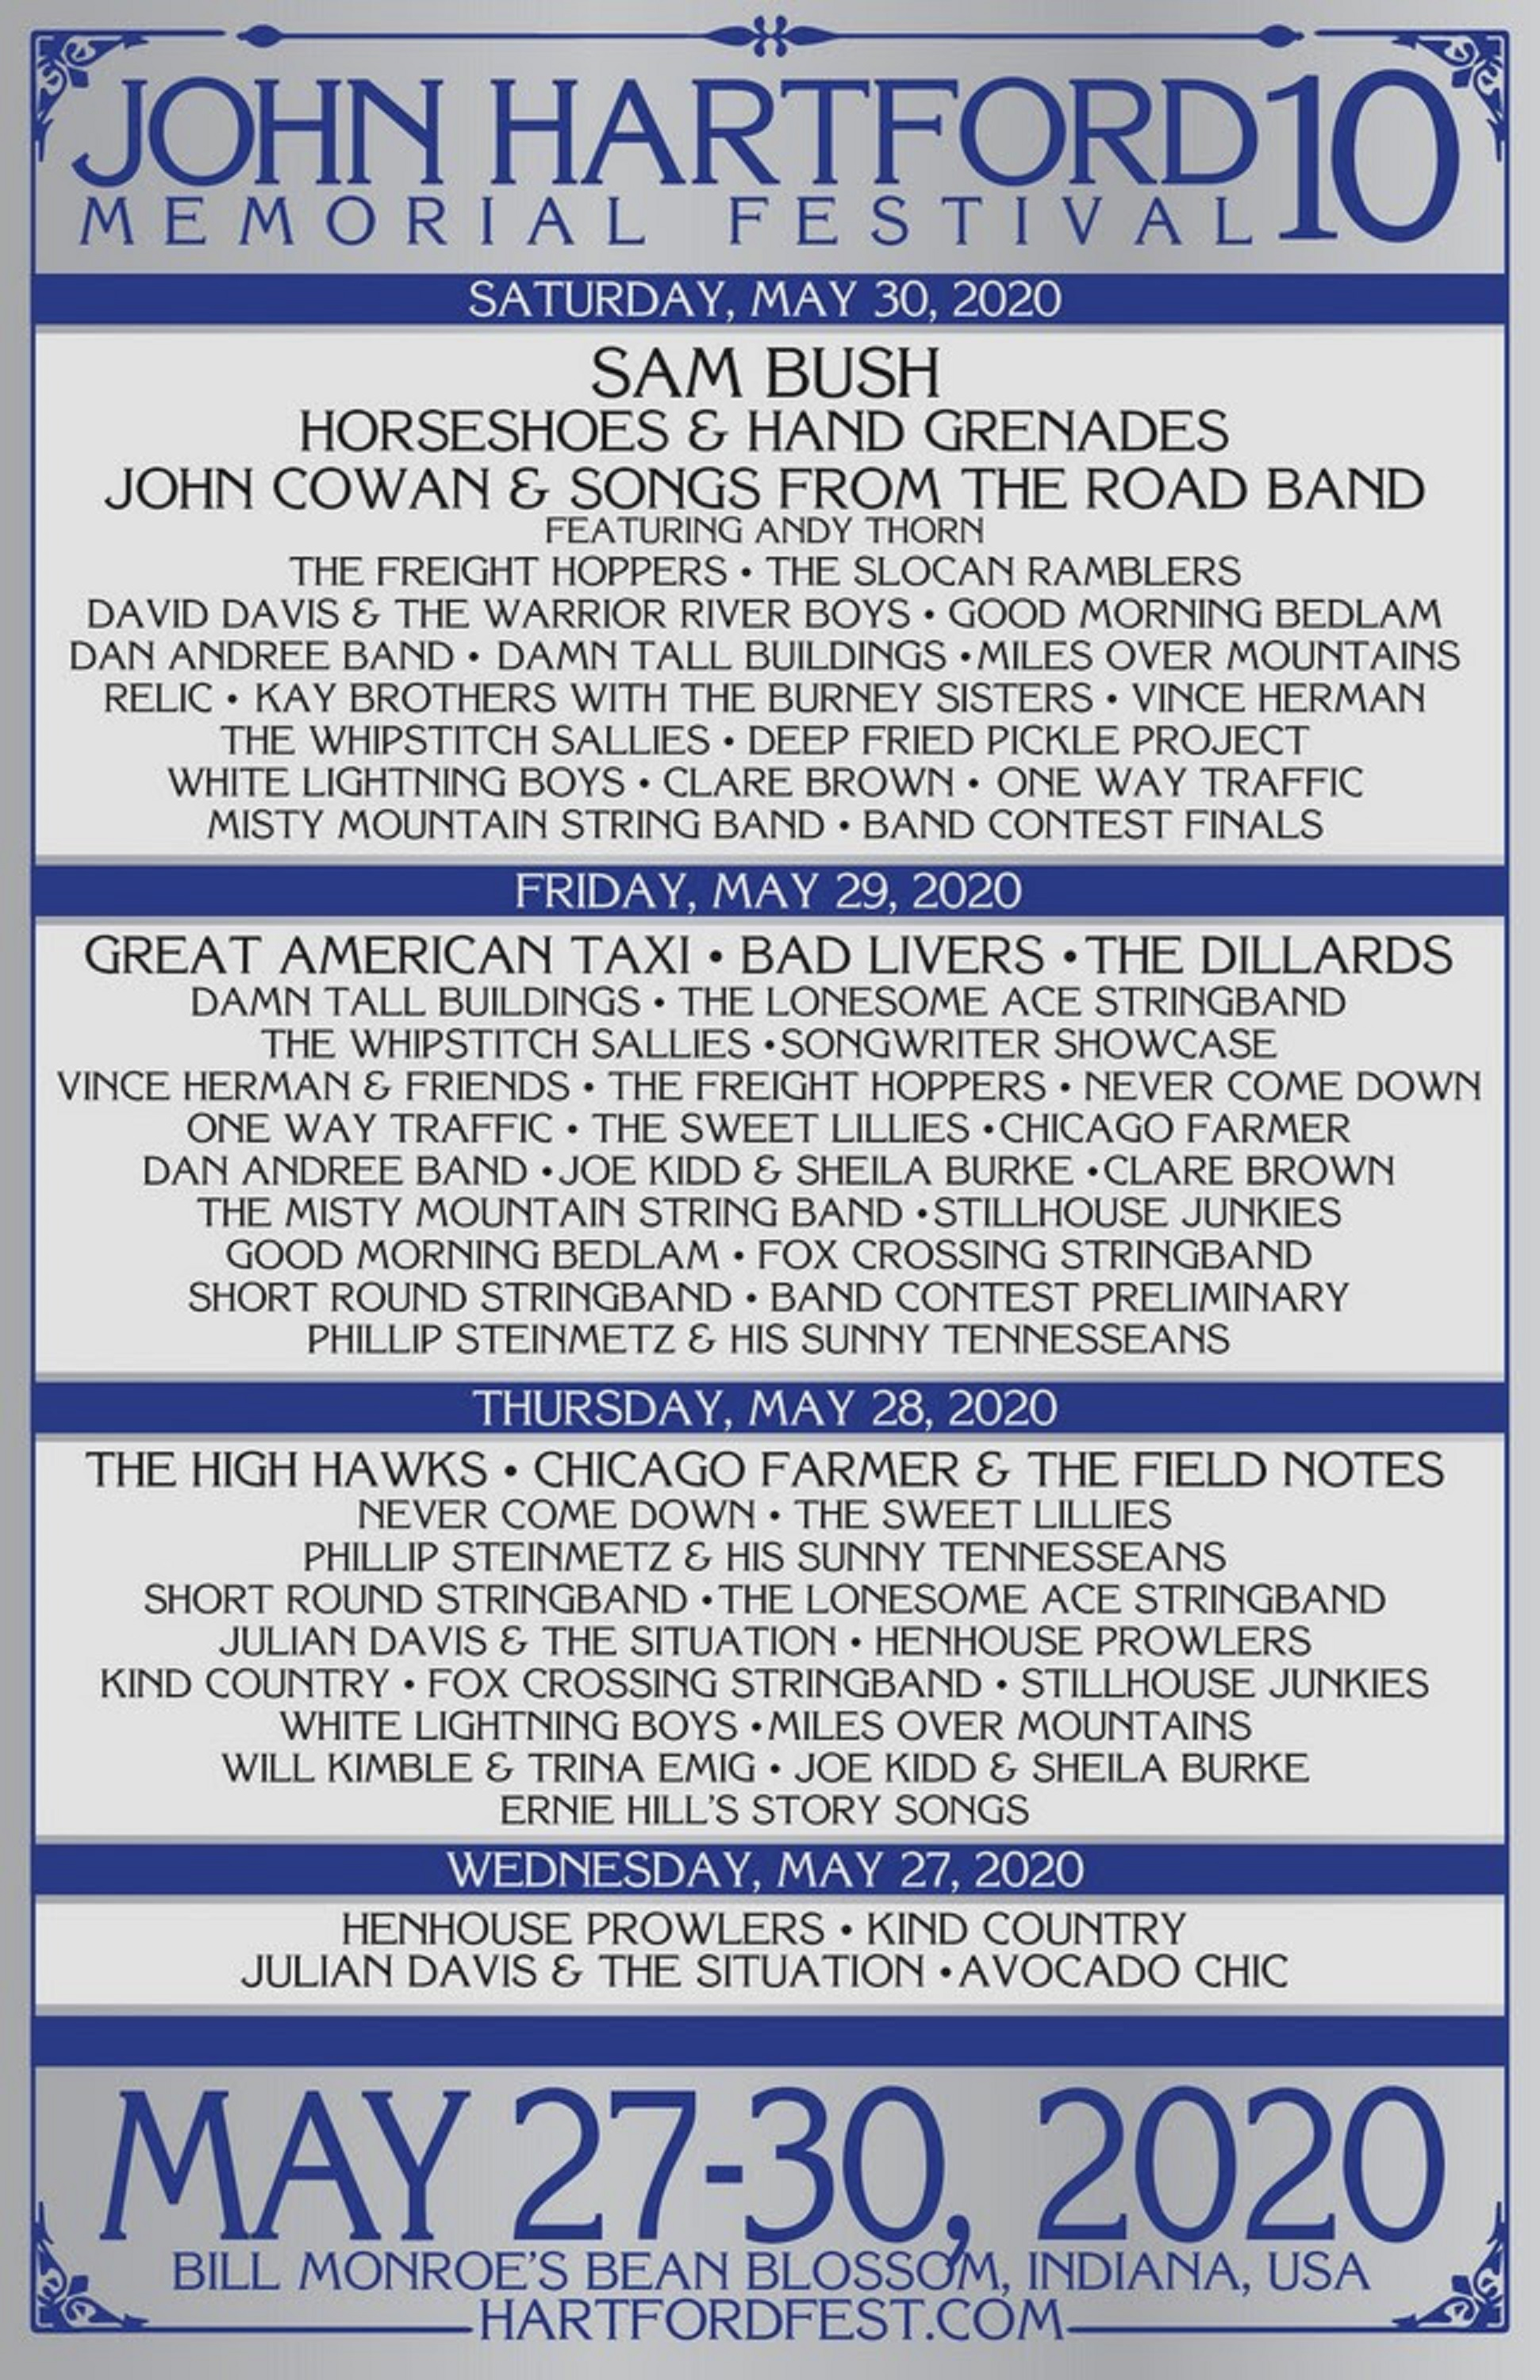 John Hartford Festival 2020 Daily Lineup Announced